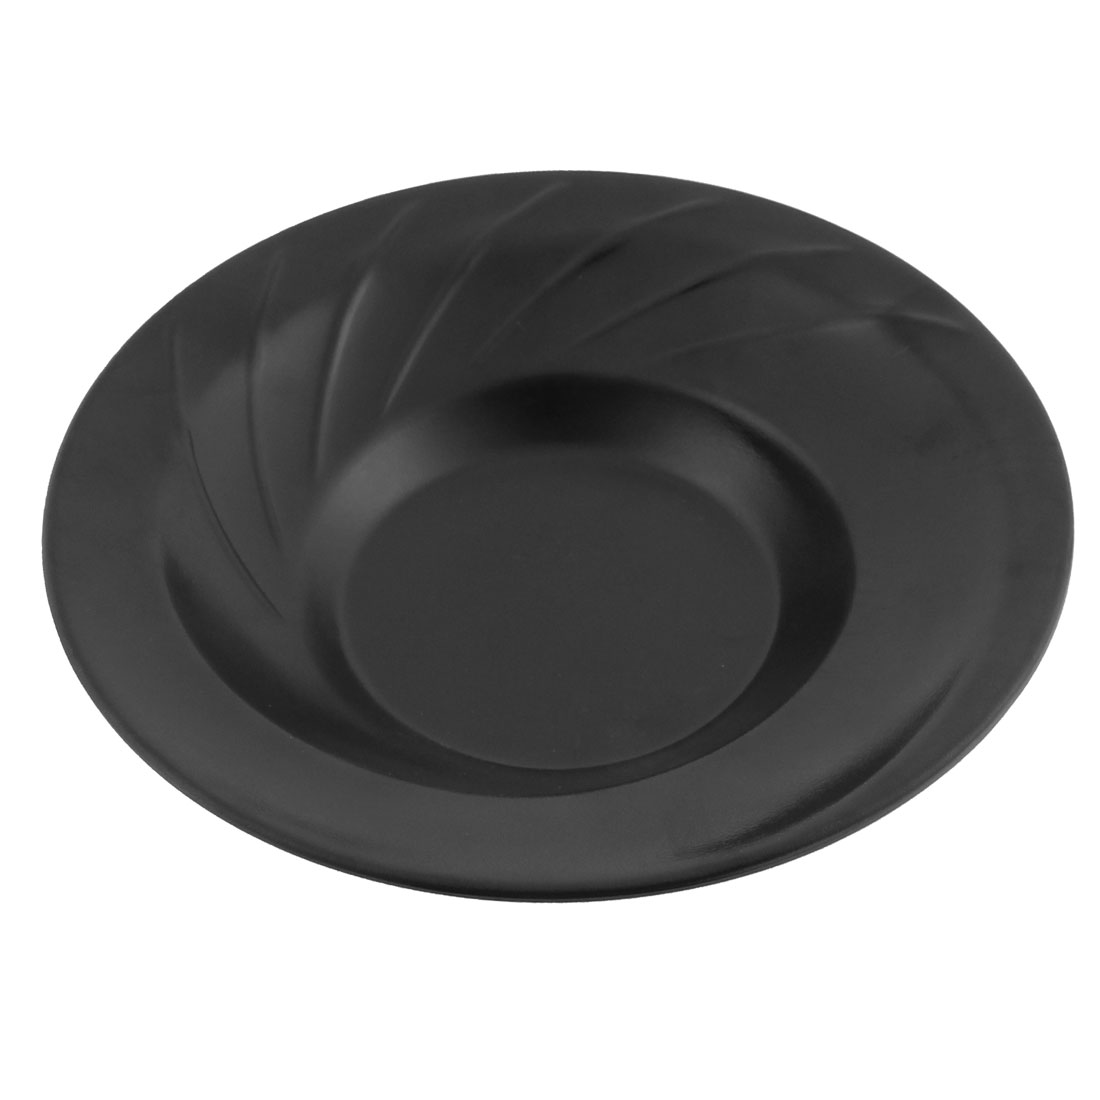 Restaurant Plastic Round Shaped Food Soup Dish Plate Tableware Black